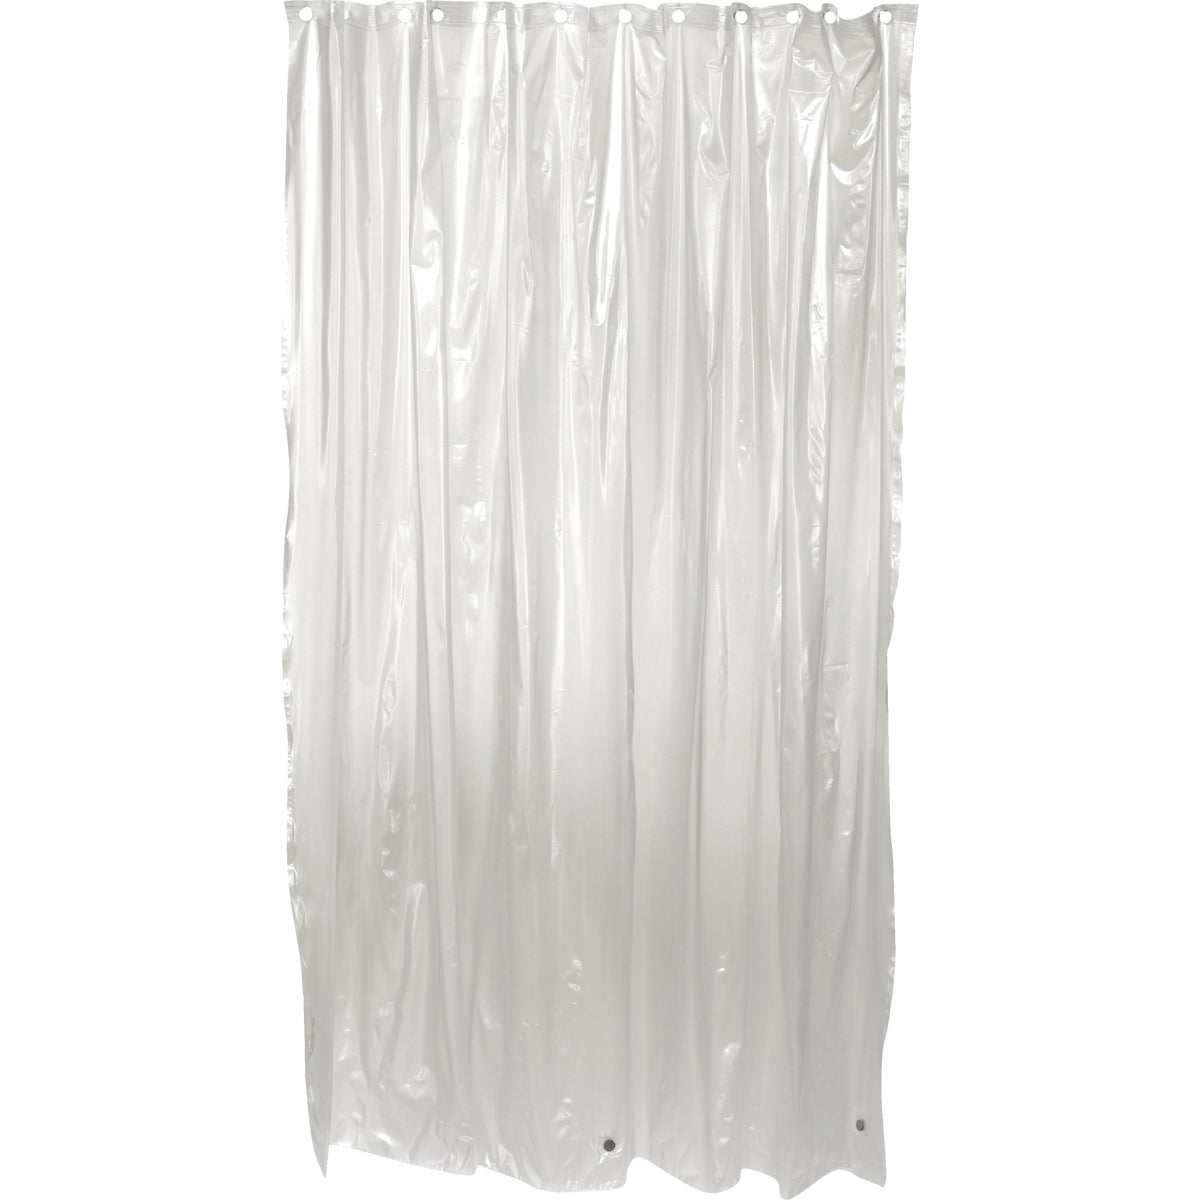 CLEAR SHOWER CURTAIN - H29KK by Zenith Prod Corp